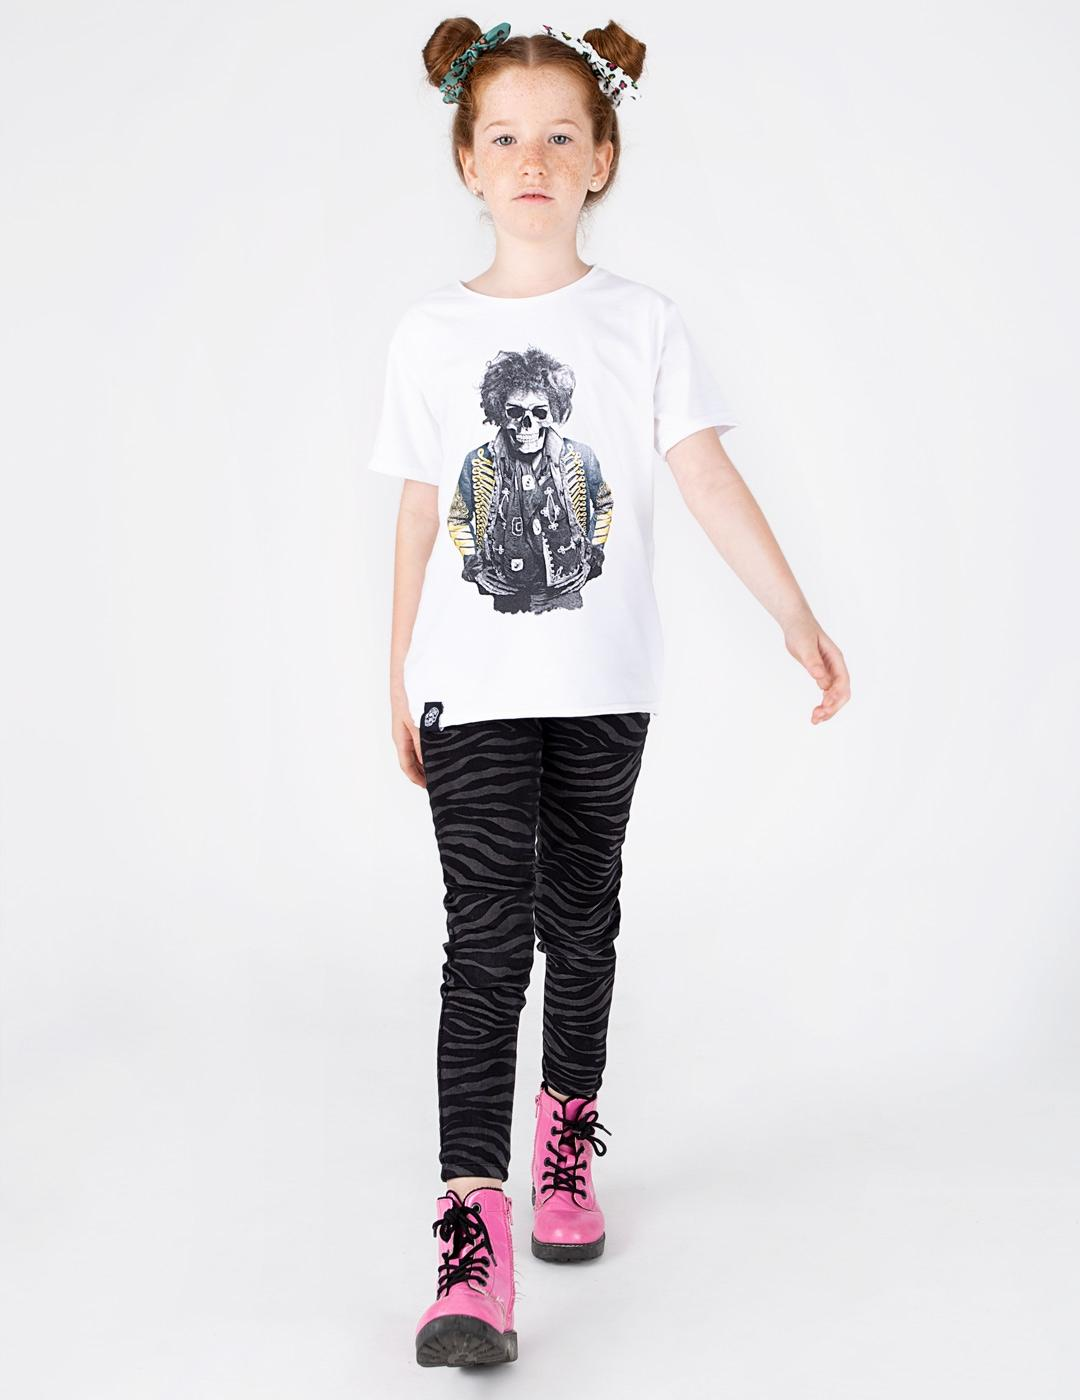 HENDRIX KIDS SAMPLE SALE